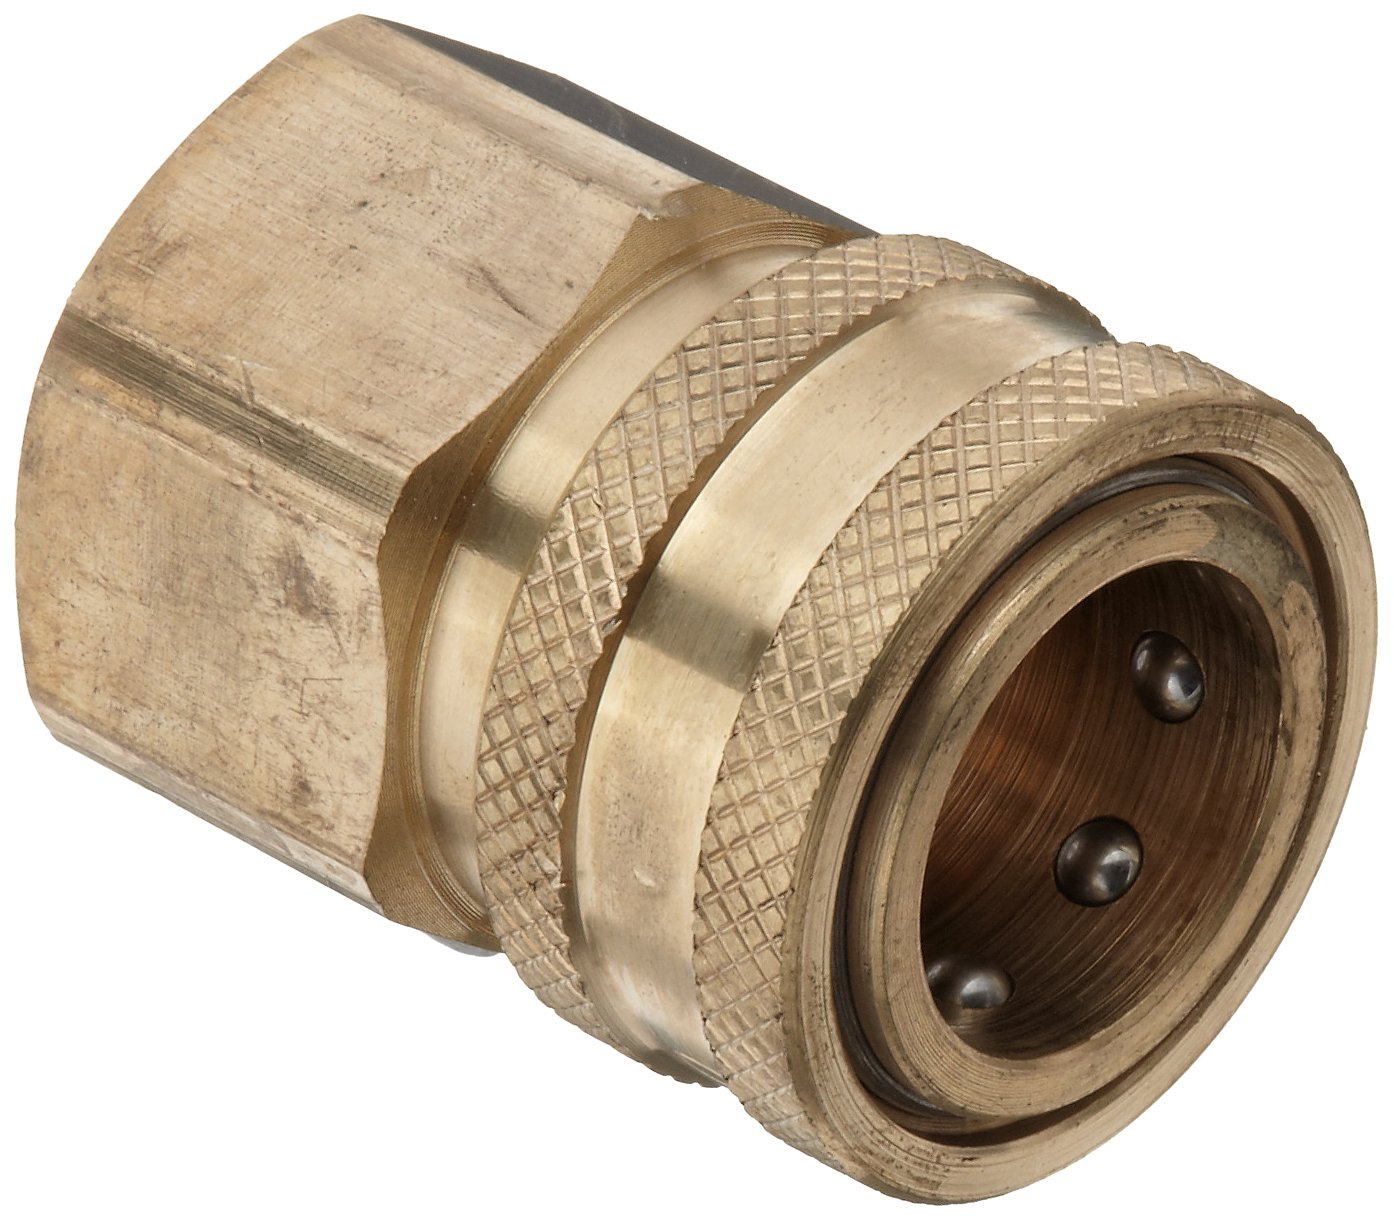 Dixon STFC10 Brass Hydraulic Quick-Connect Fitting, 1-1/4' Female Coupling x 1-1/4'-11-1/2 NPTF Female 1-1/4 Female Coupling x 1-1/4-11-1/2 NPTF Female Dixon Valve & Coupling